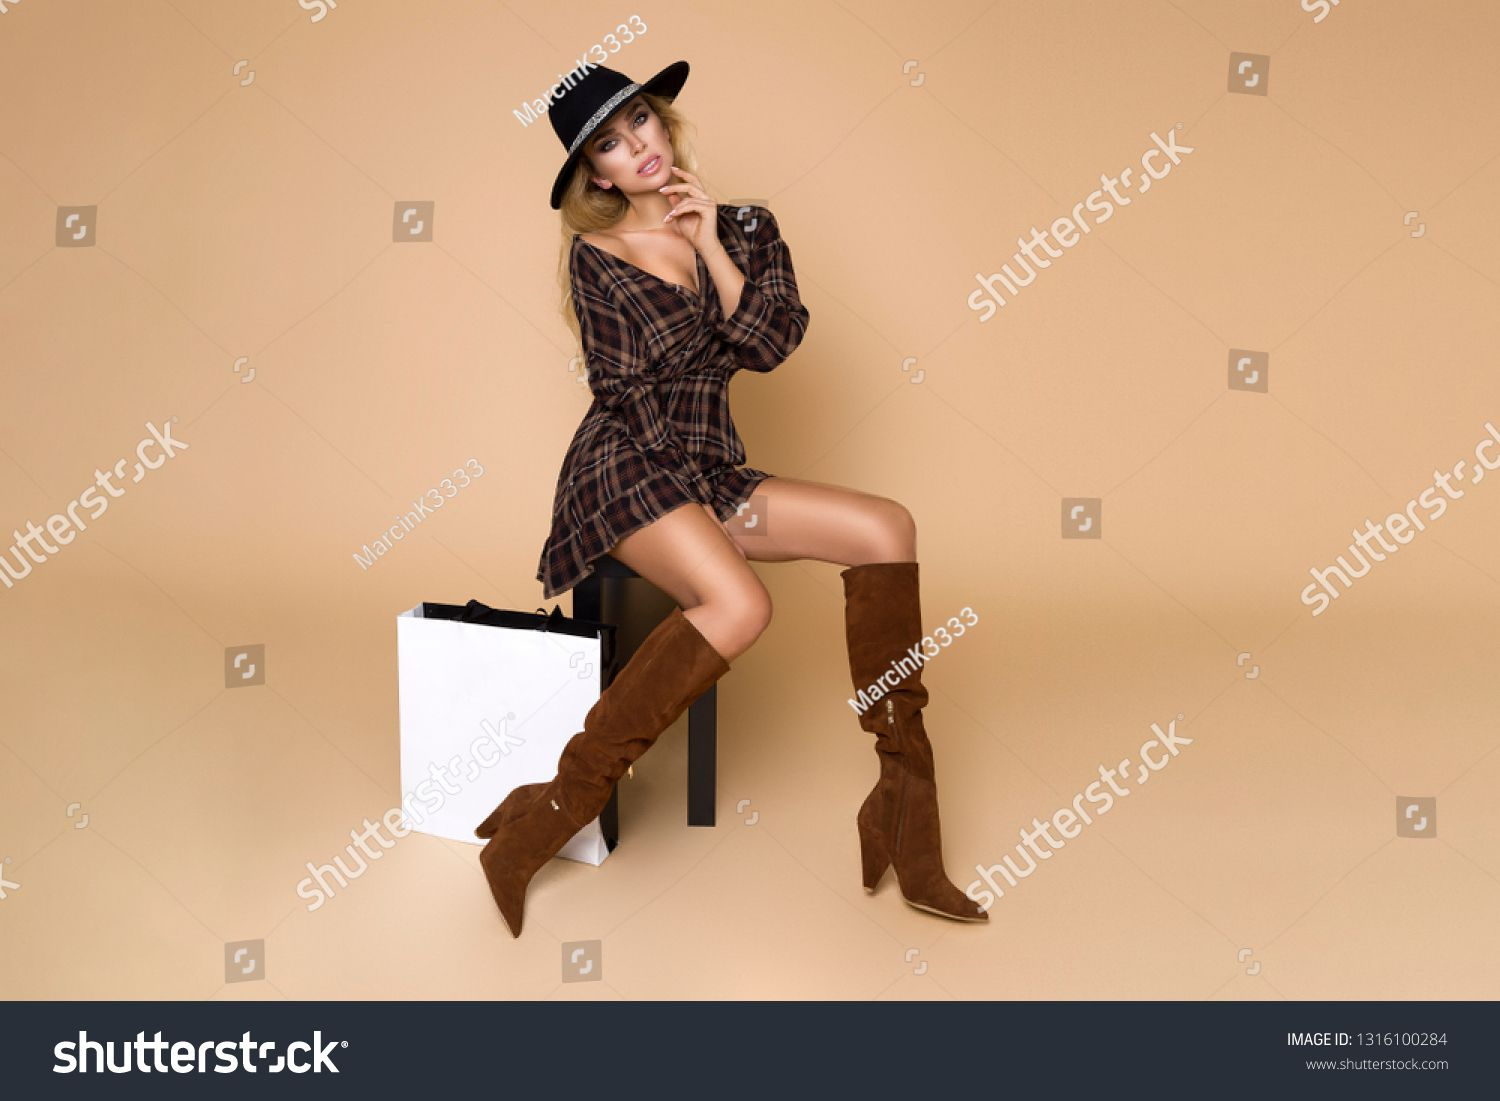 Fashion Model girl full length portrait isolated on beige background. Beauty stylish blonde woman posing in fashionable clothes in studio. Casual style, beauty accessories,hat and handbag #Sponsored , #AFFILIATE, #beige#isolated#background#stylish